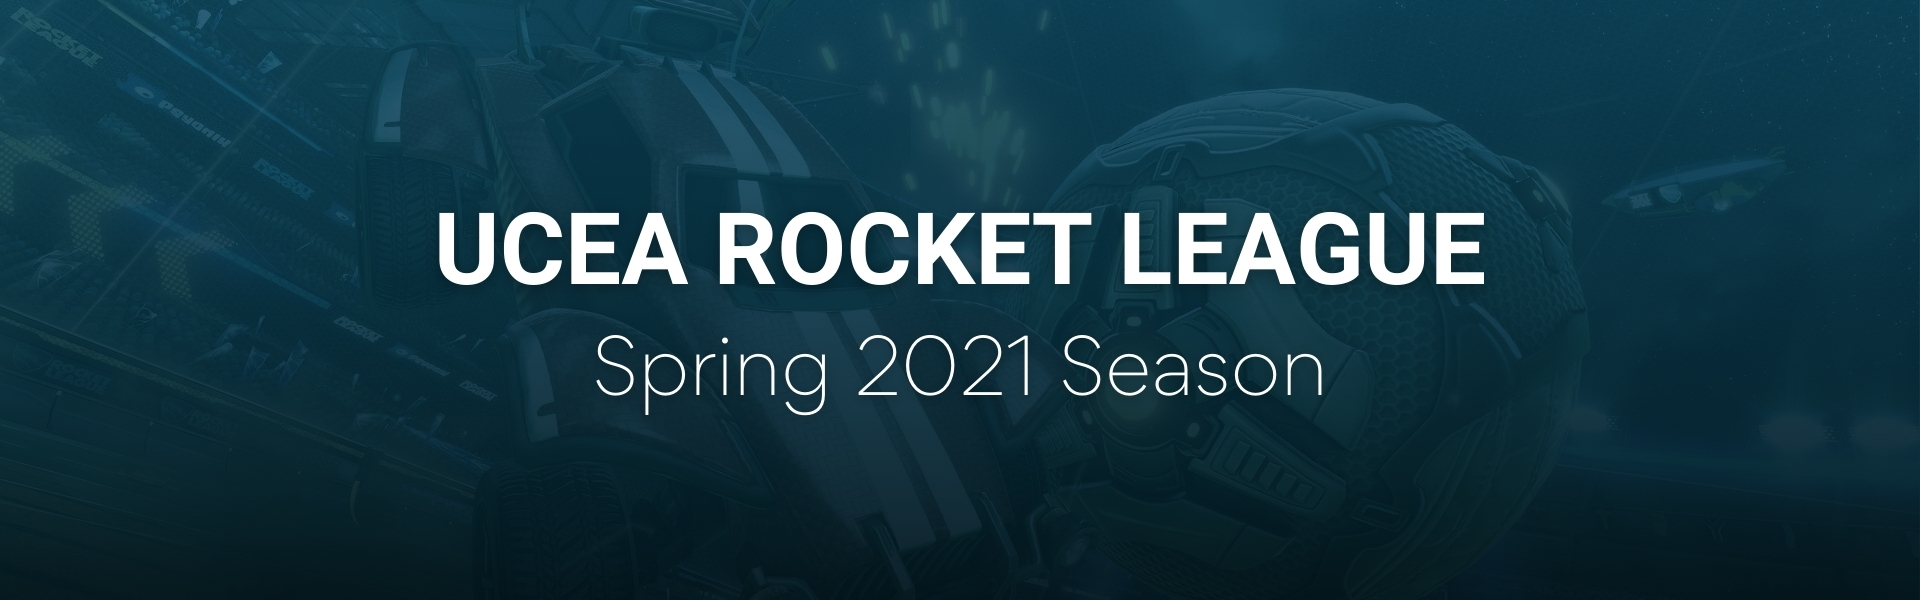 UCEA Rocket League Spring Season 2021